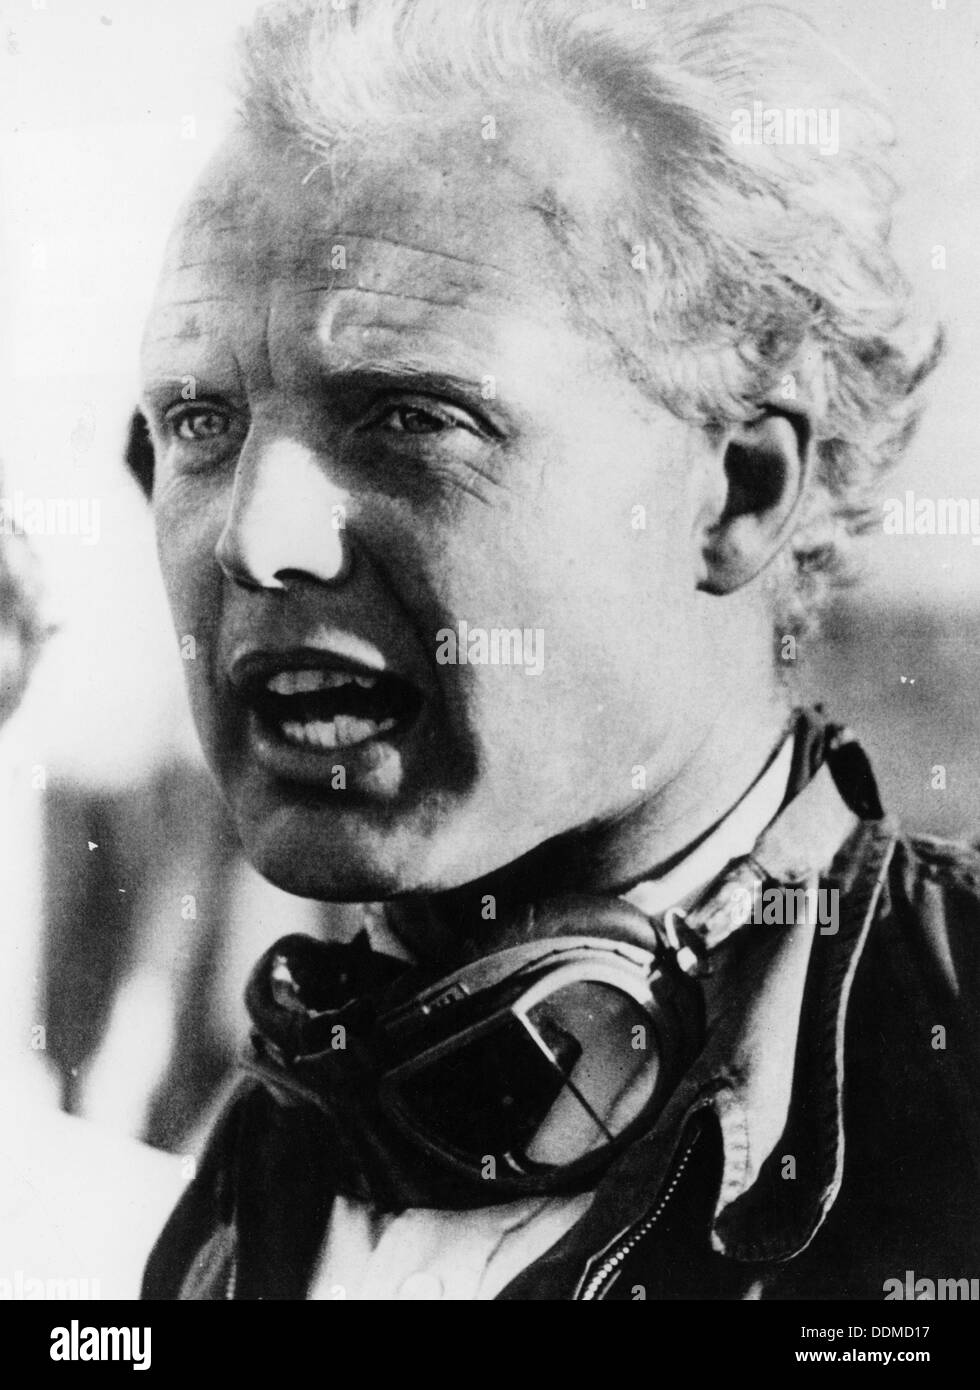 Mike Hawthorn, racing driver, mid-1950s. - Stock Image